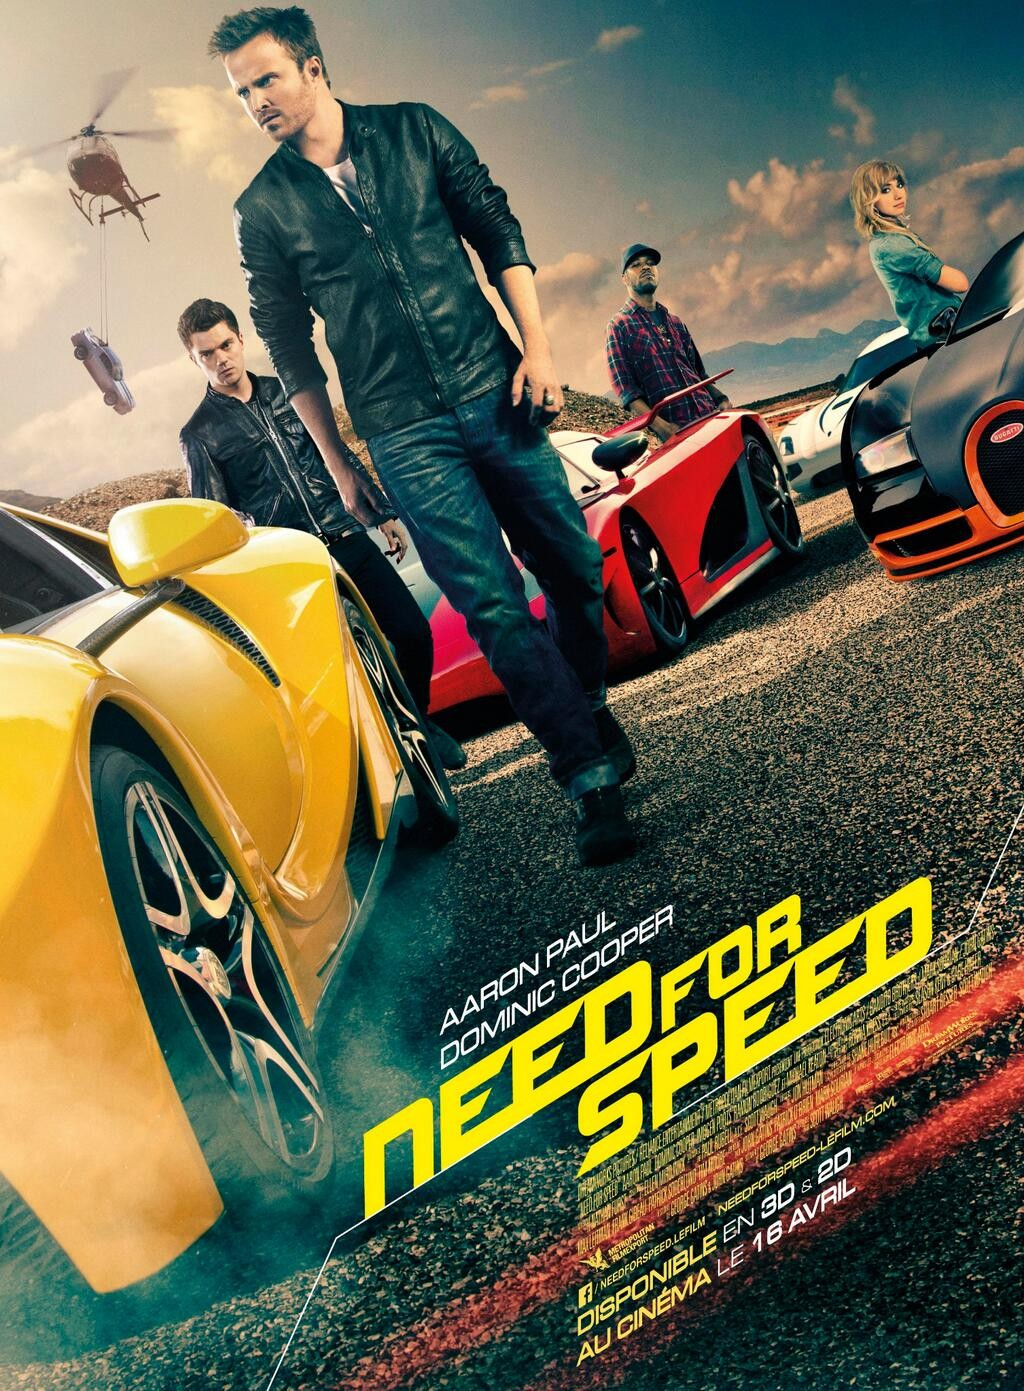 nfs_pic1